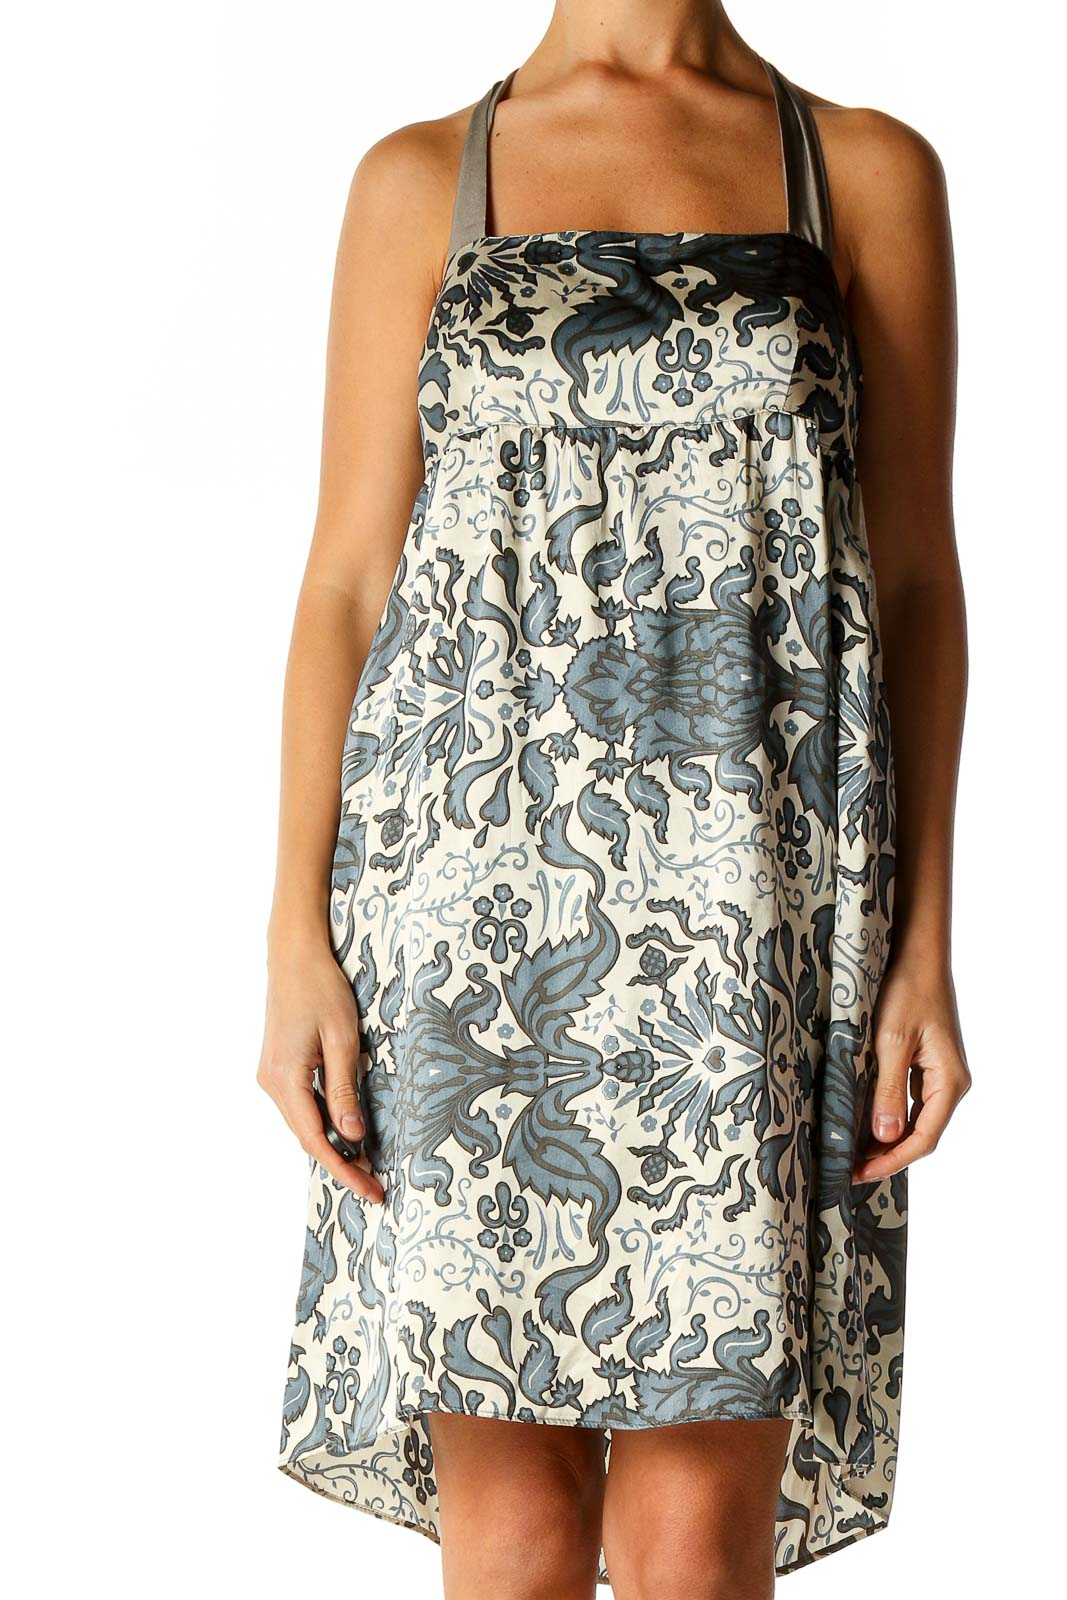 Beige Graphic Print Holiday A-Line Dress Front